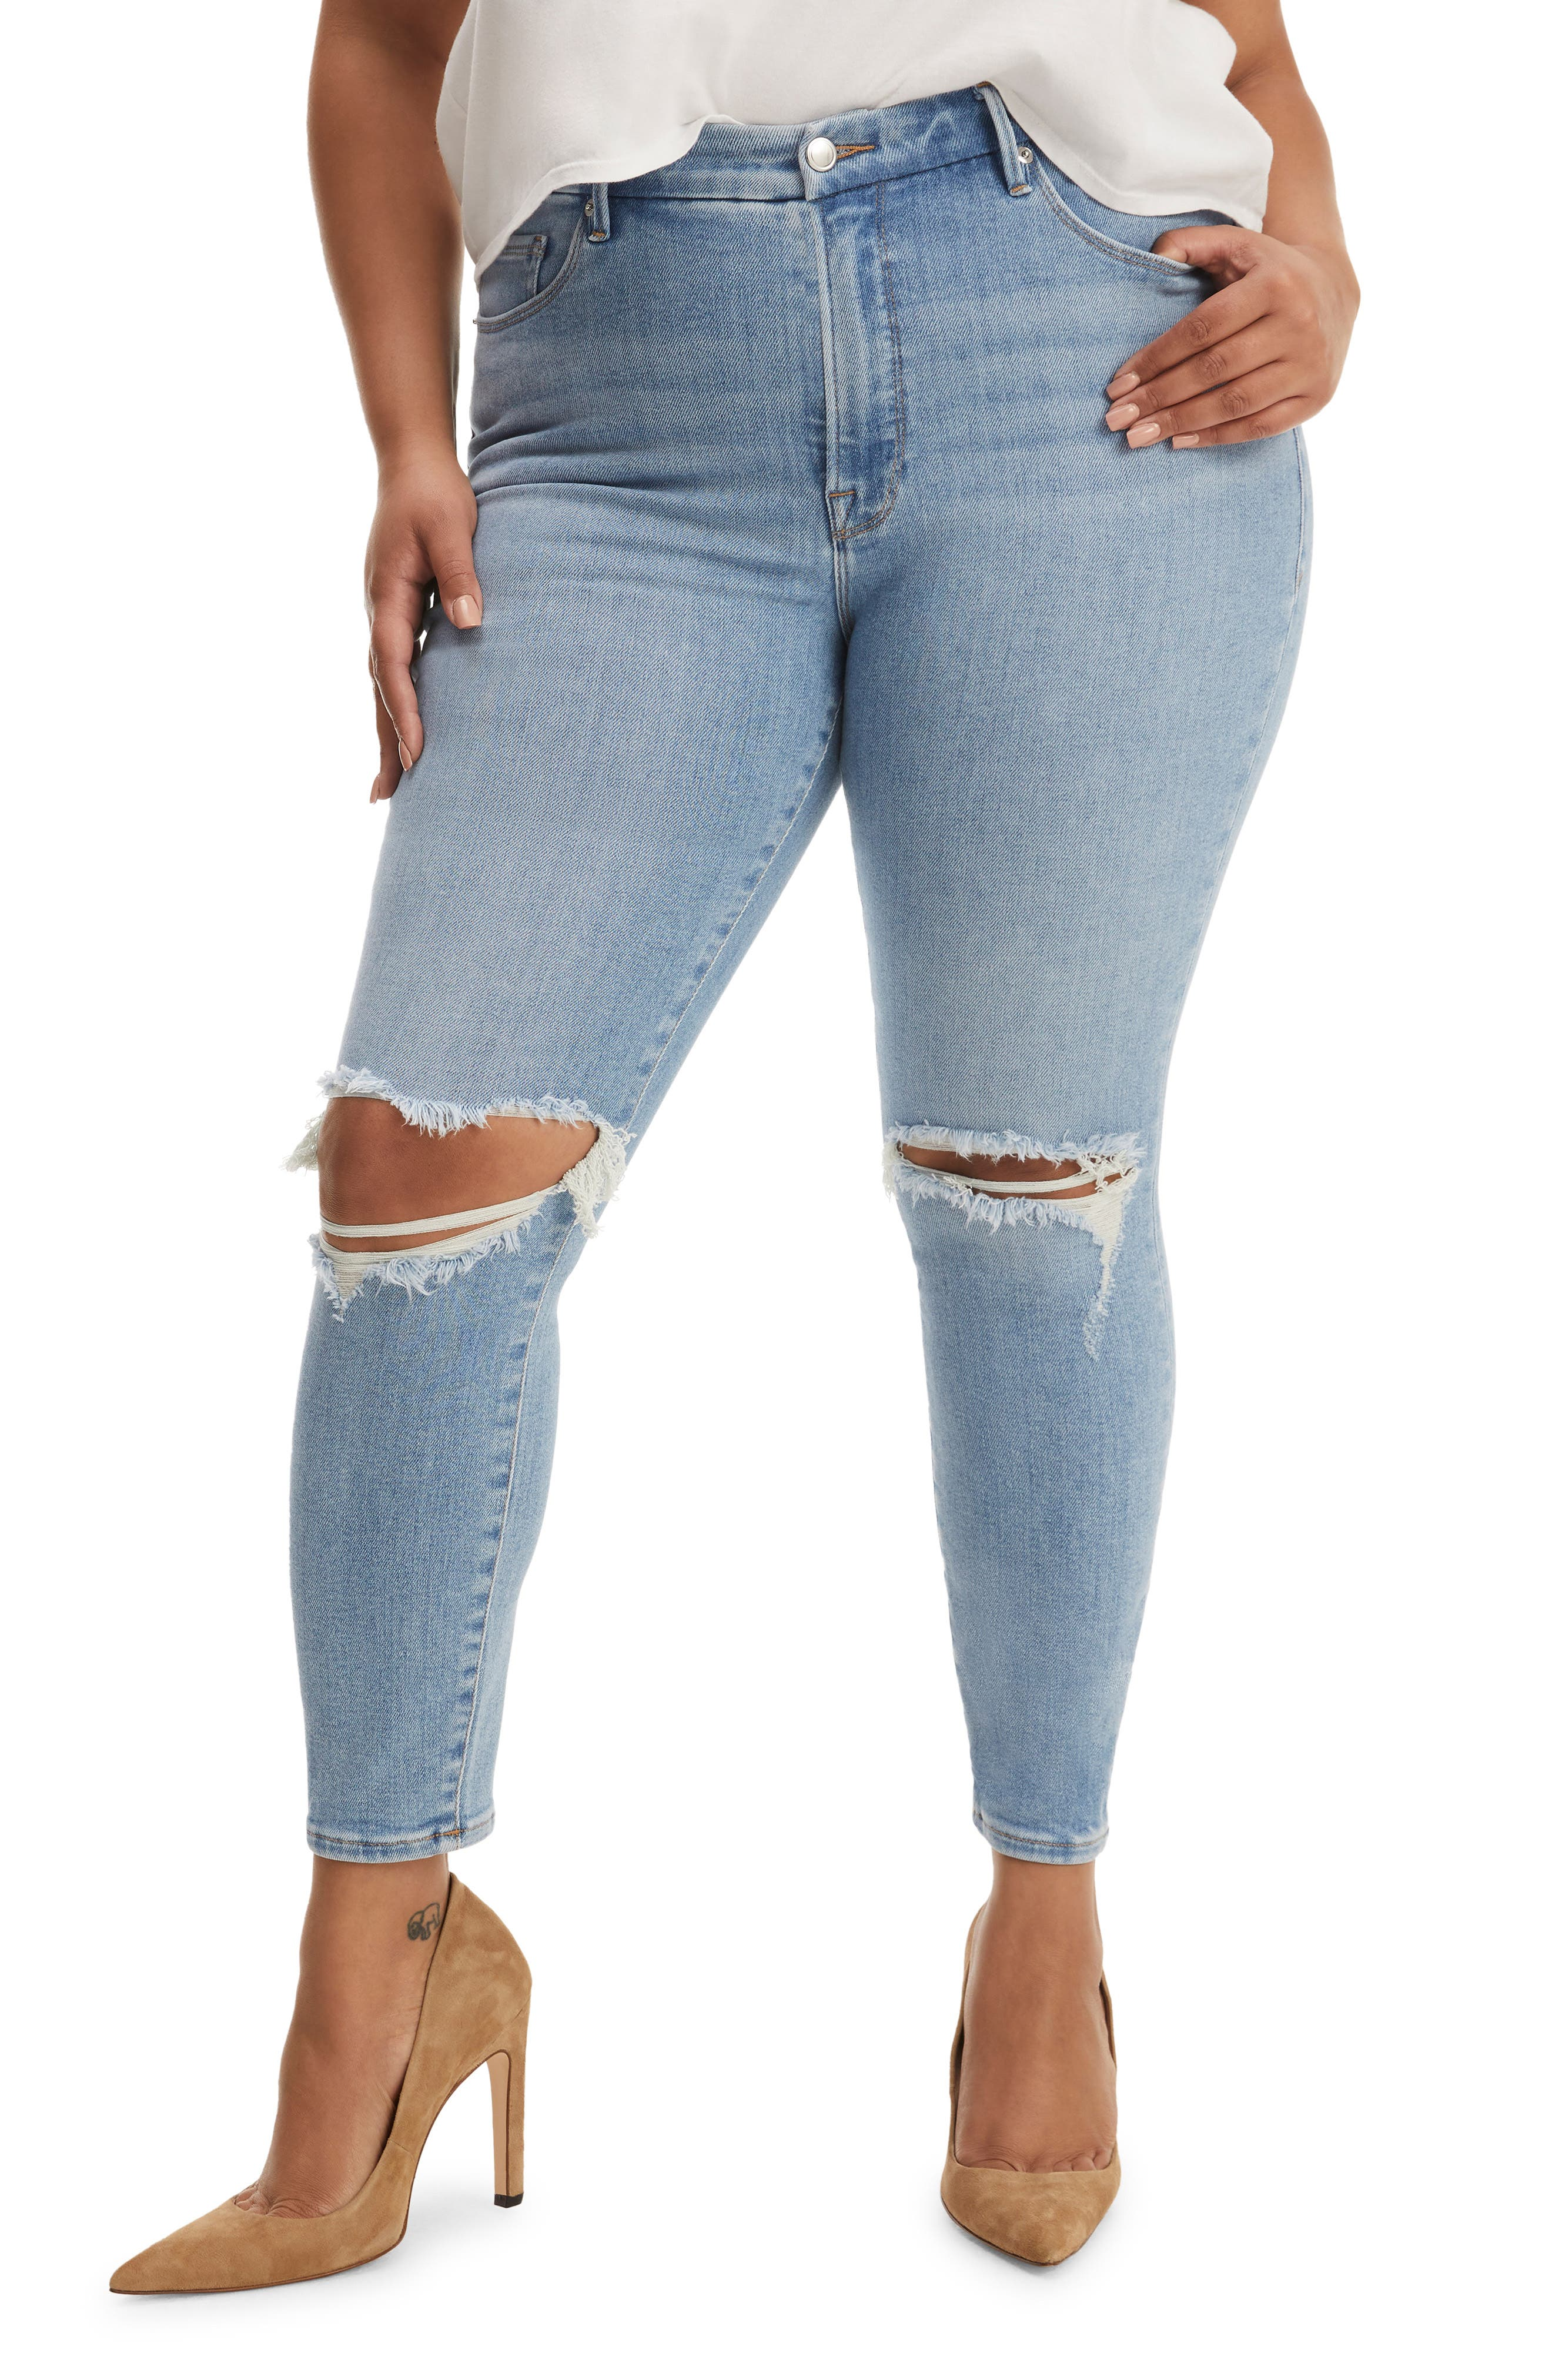 Women's Good American Good Legs Low Rise Ripped Ankle Skinny Jeans